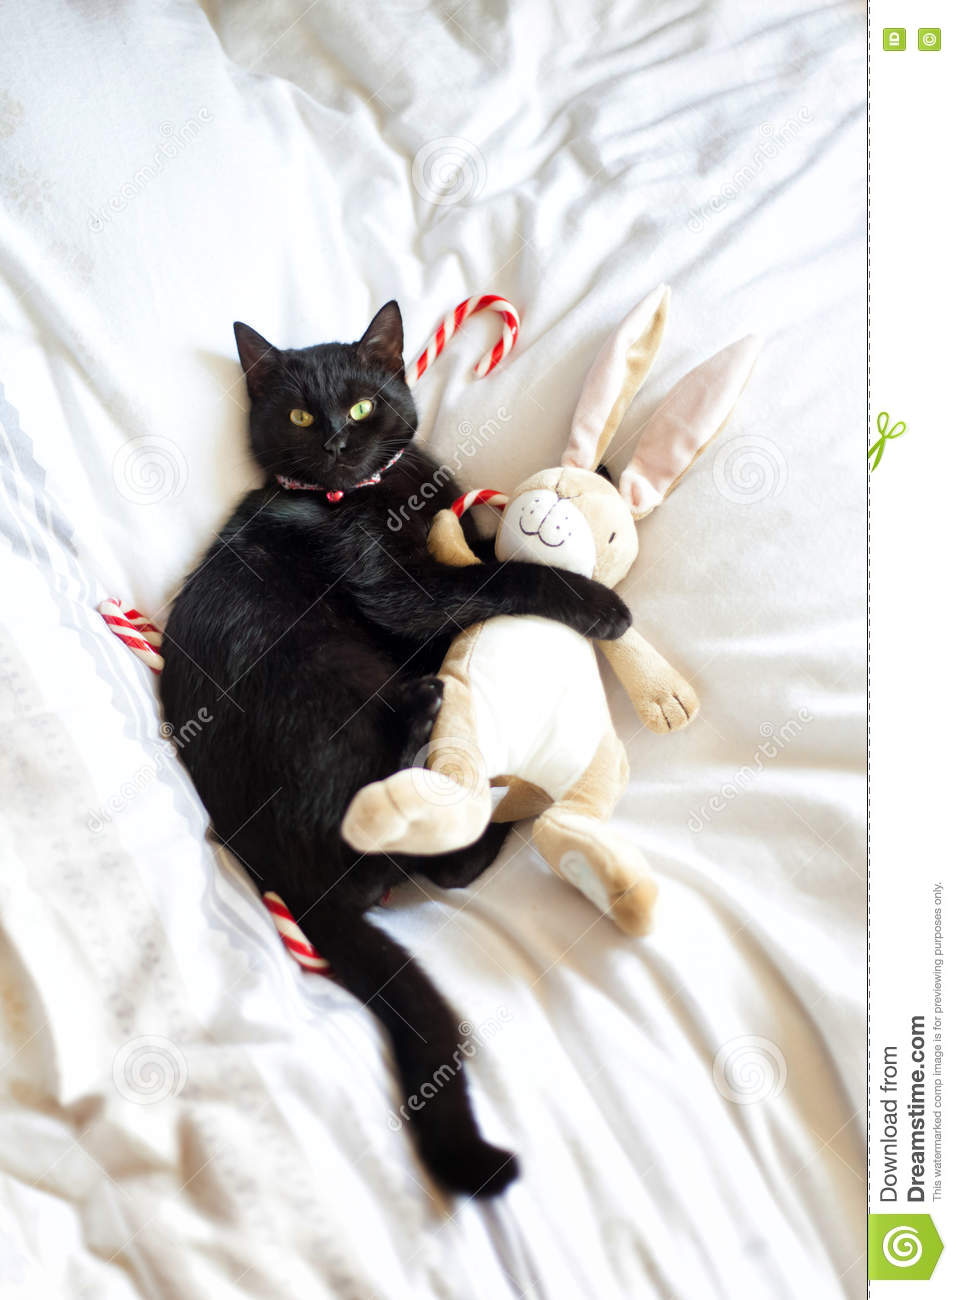 Black Cat Hugging A Stuffed Animal Stock Image Image Of Collar